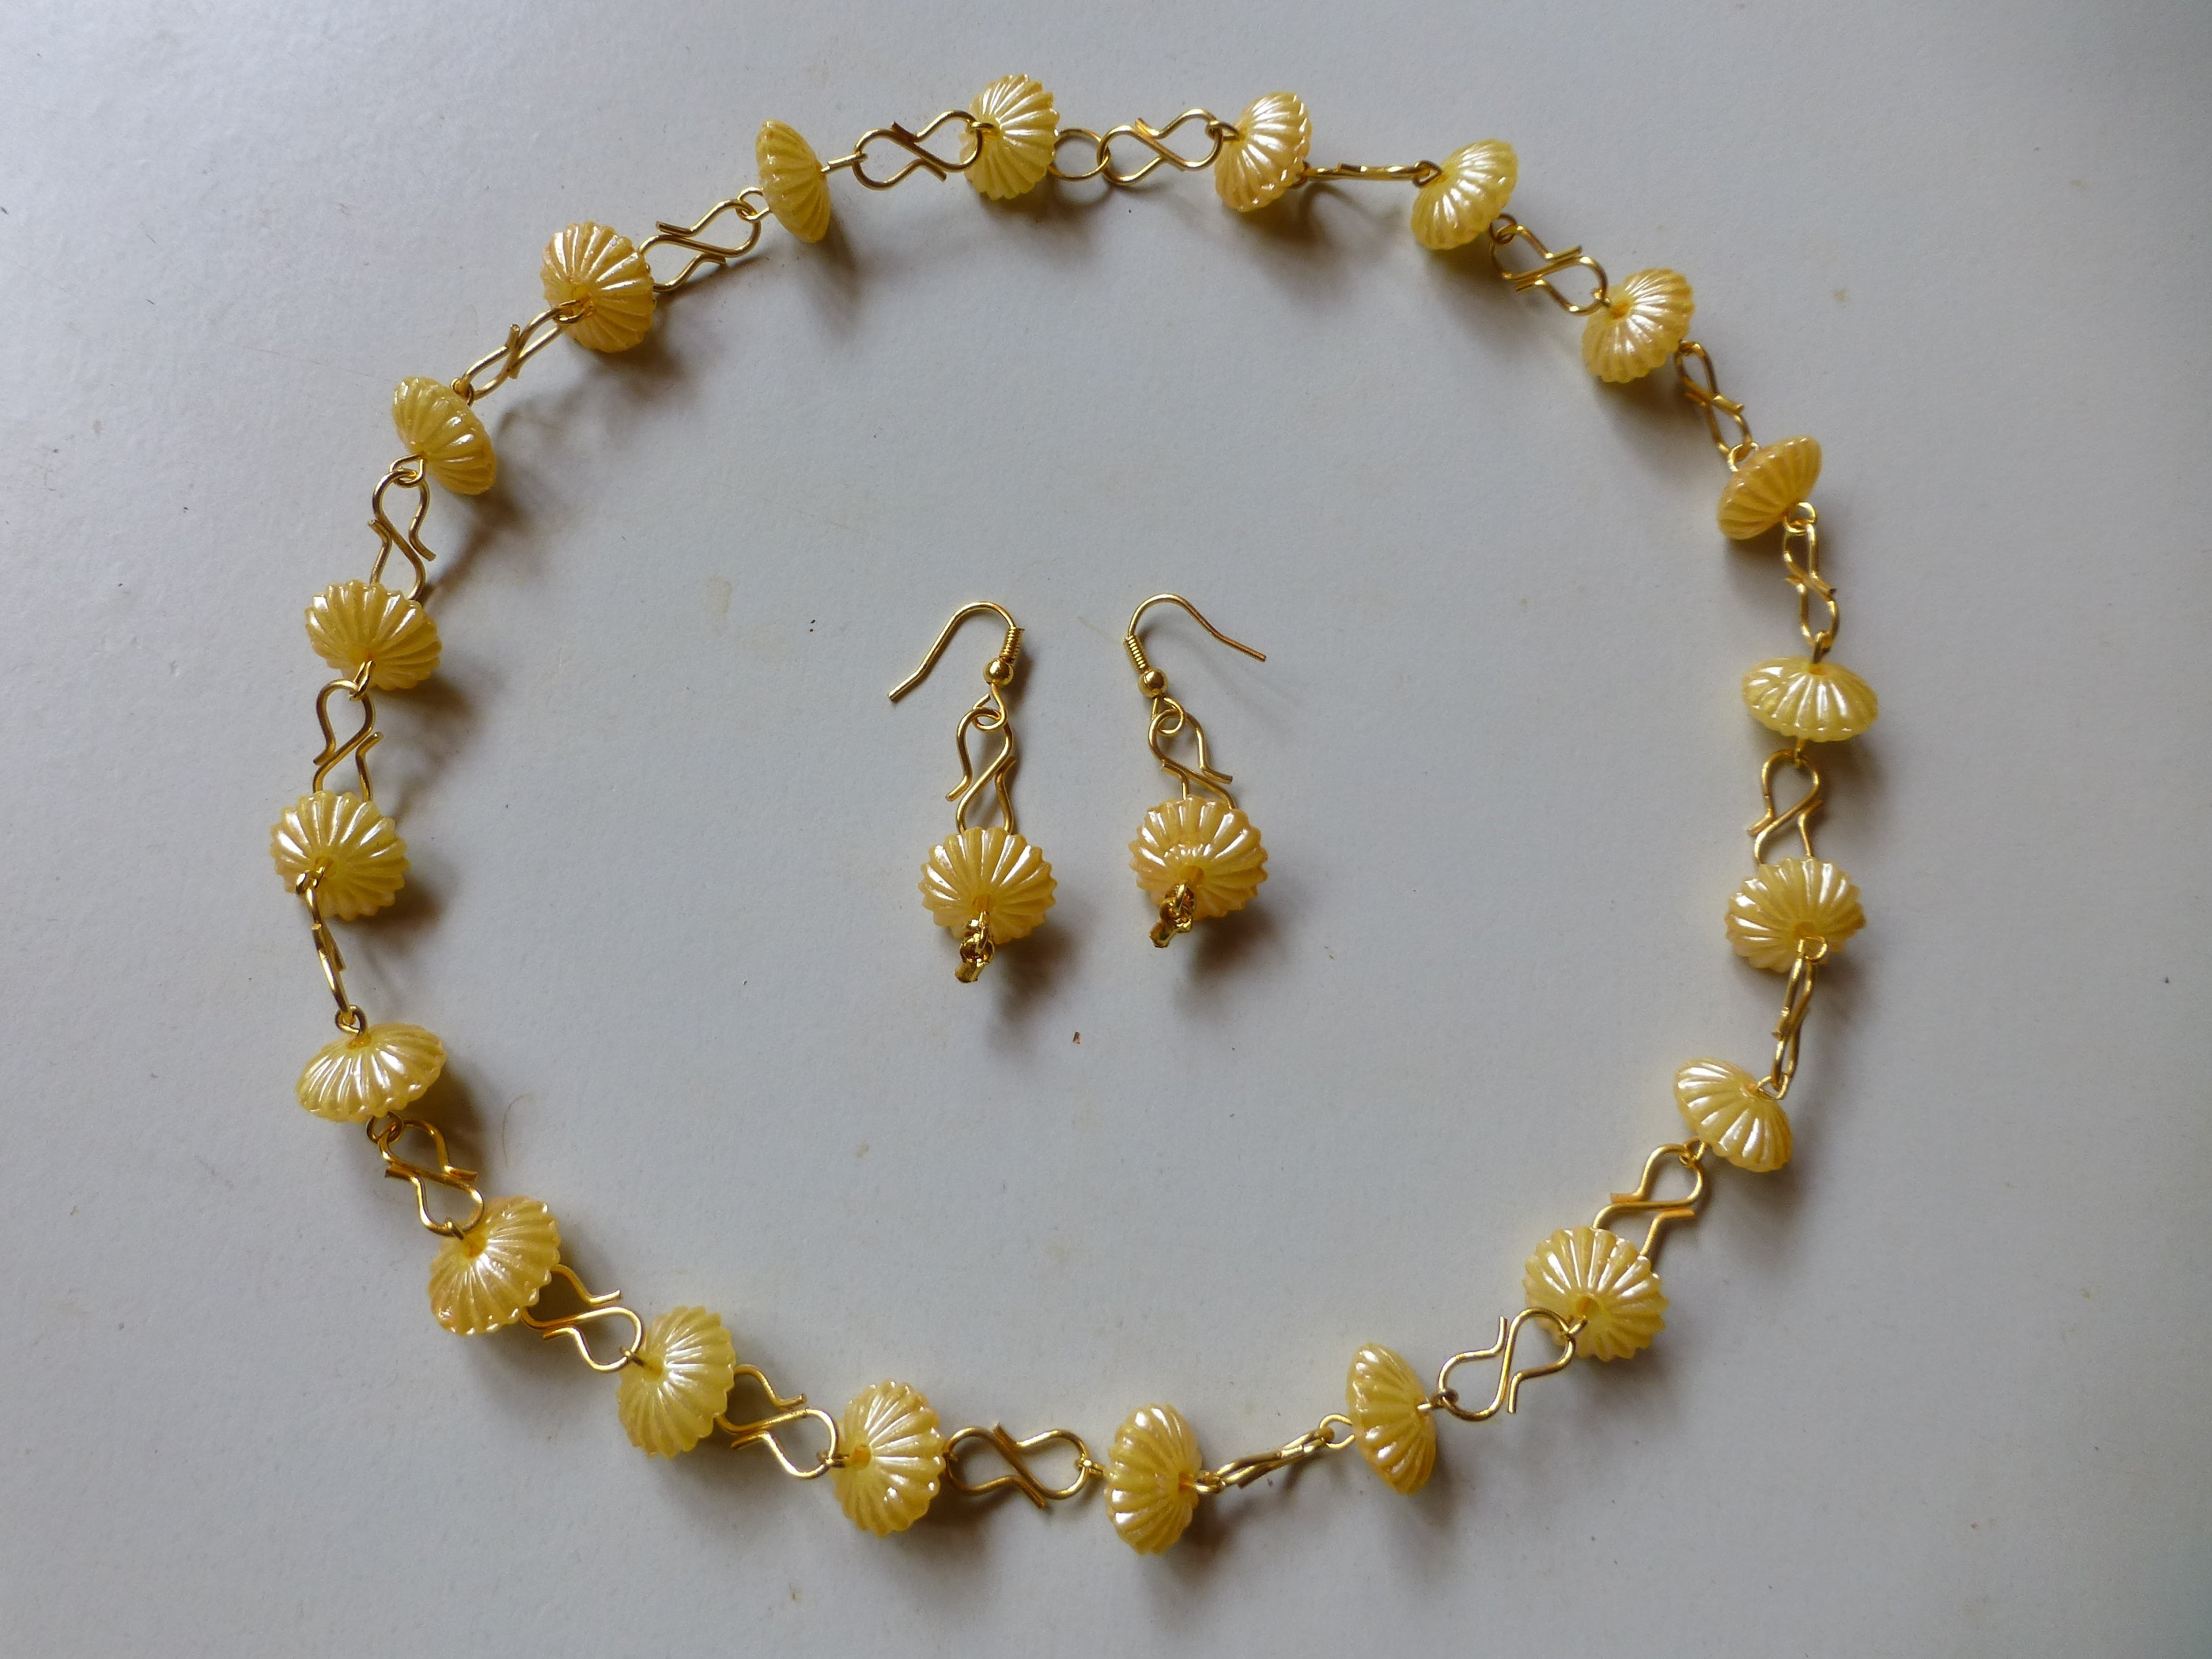 Crystal Beaded Necklace With Matching Earrings